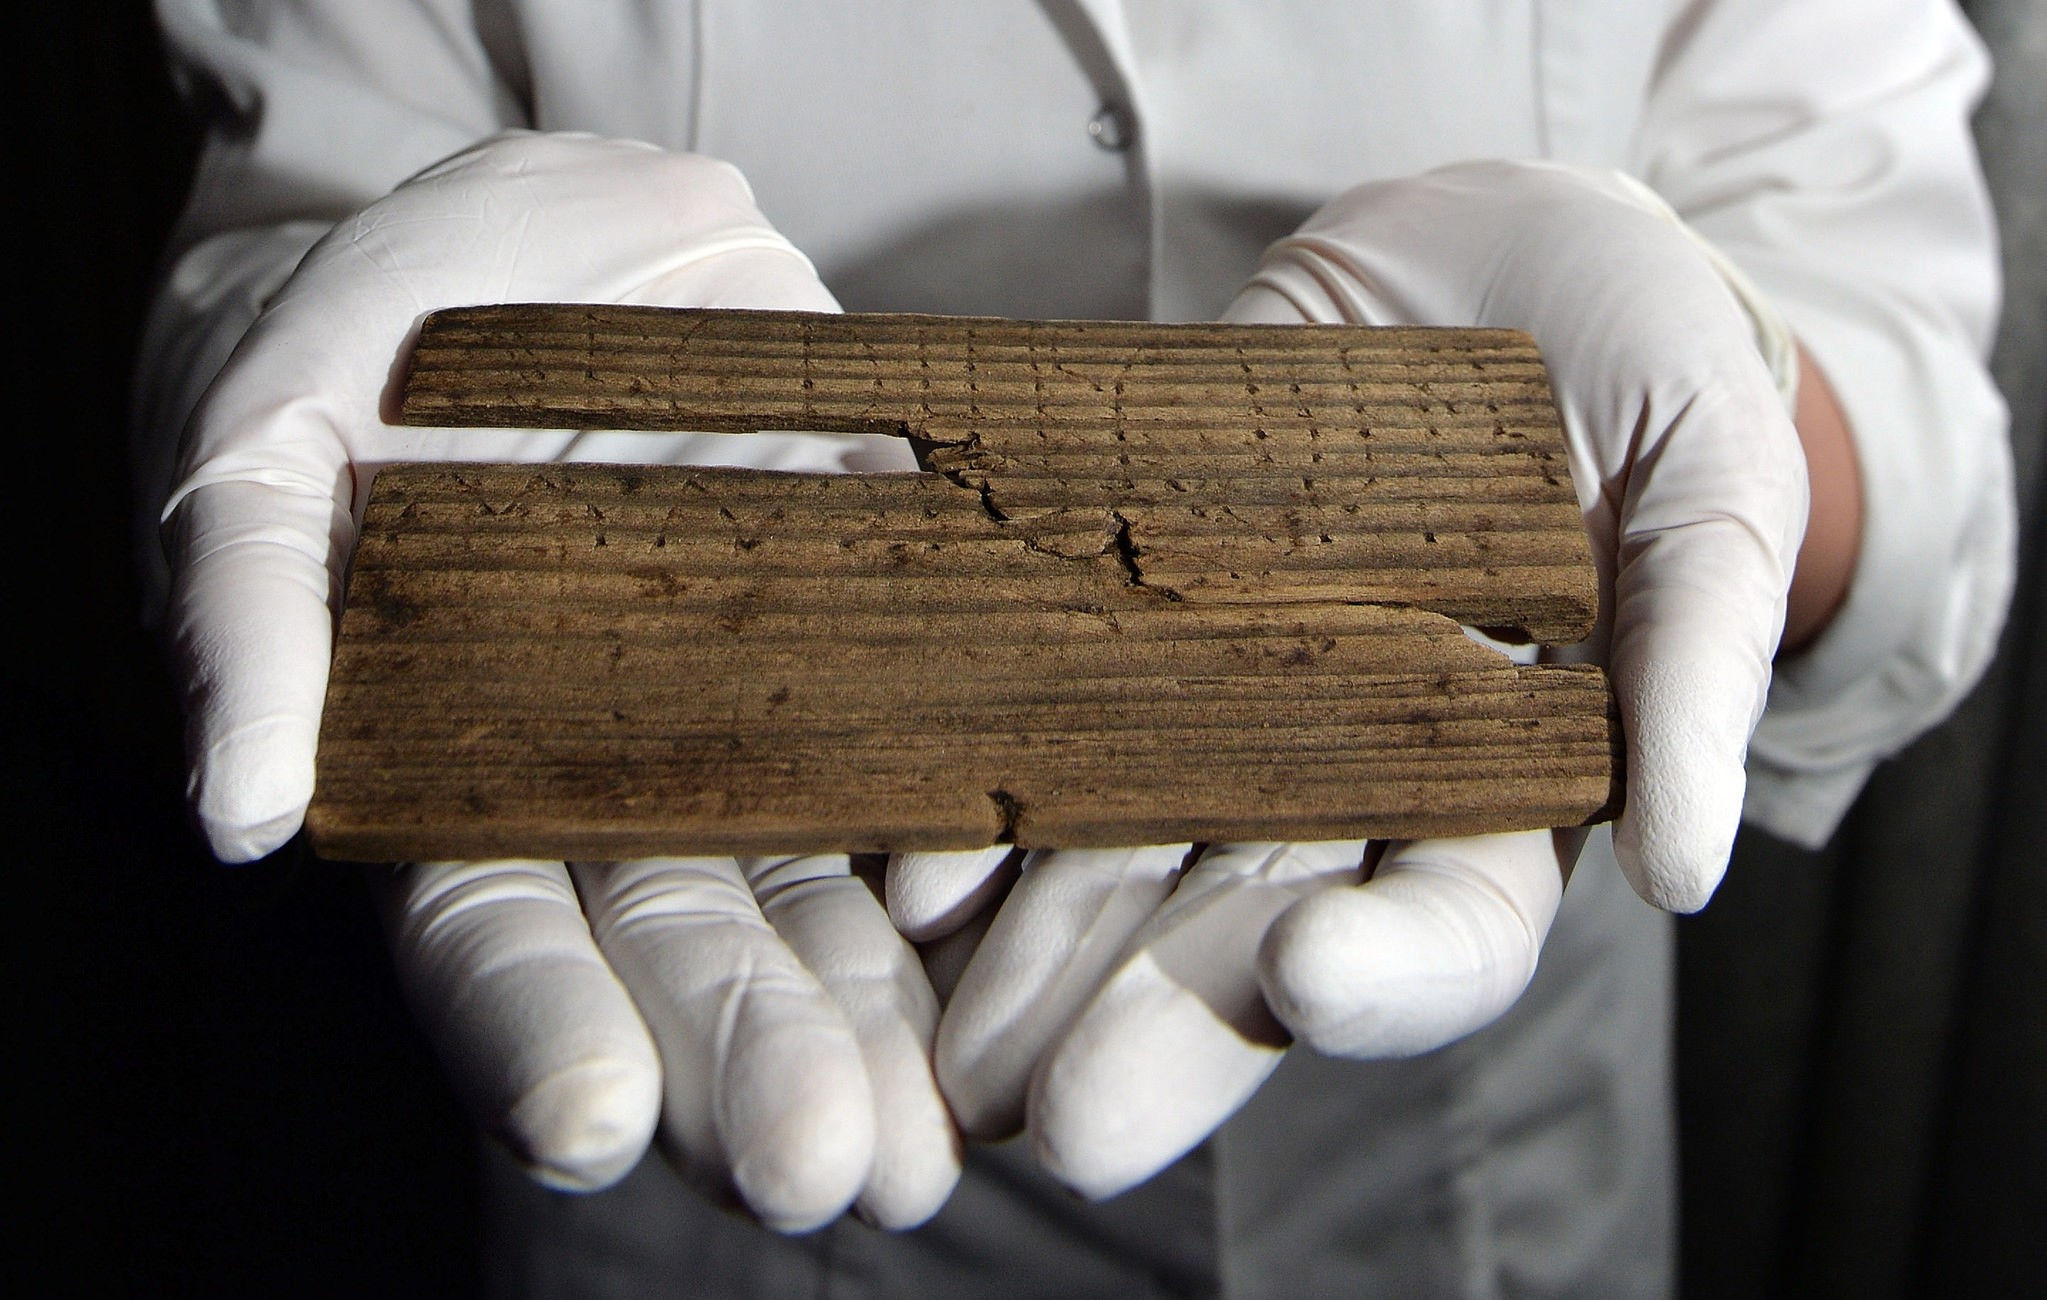 Luisa Duarte, a conservator for the Museum of London, holds a piece of wood with the Roman alphabet written on it in, in London, Wednesday, June 1, 2016 (AP Photo